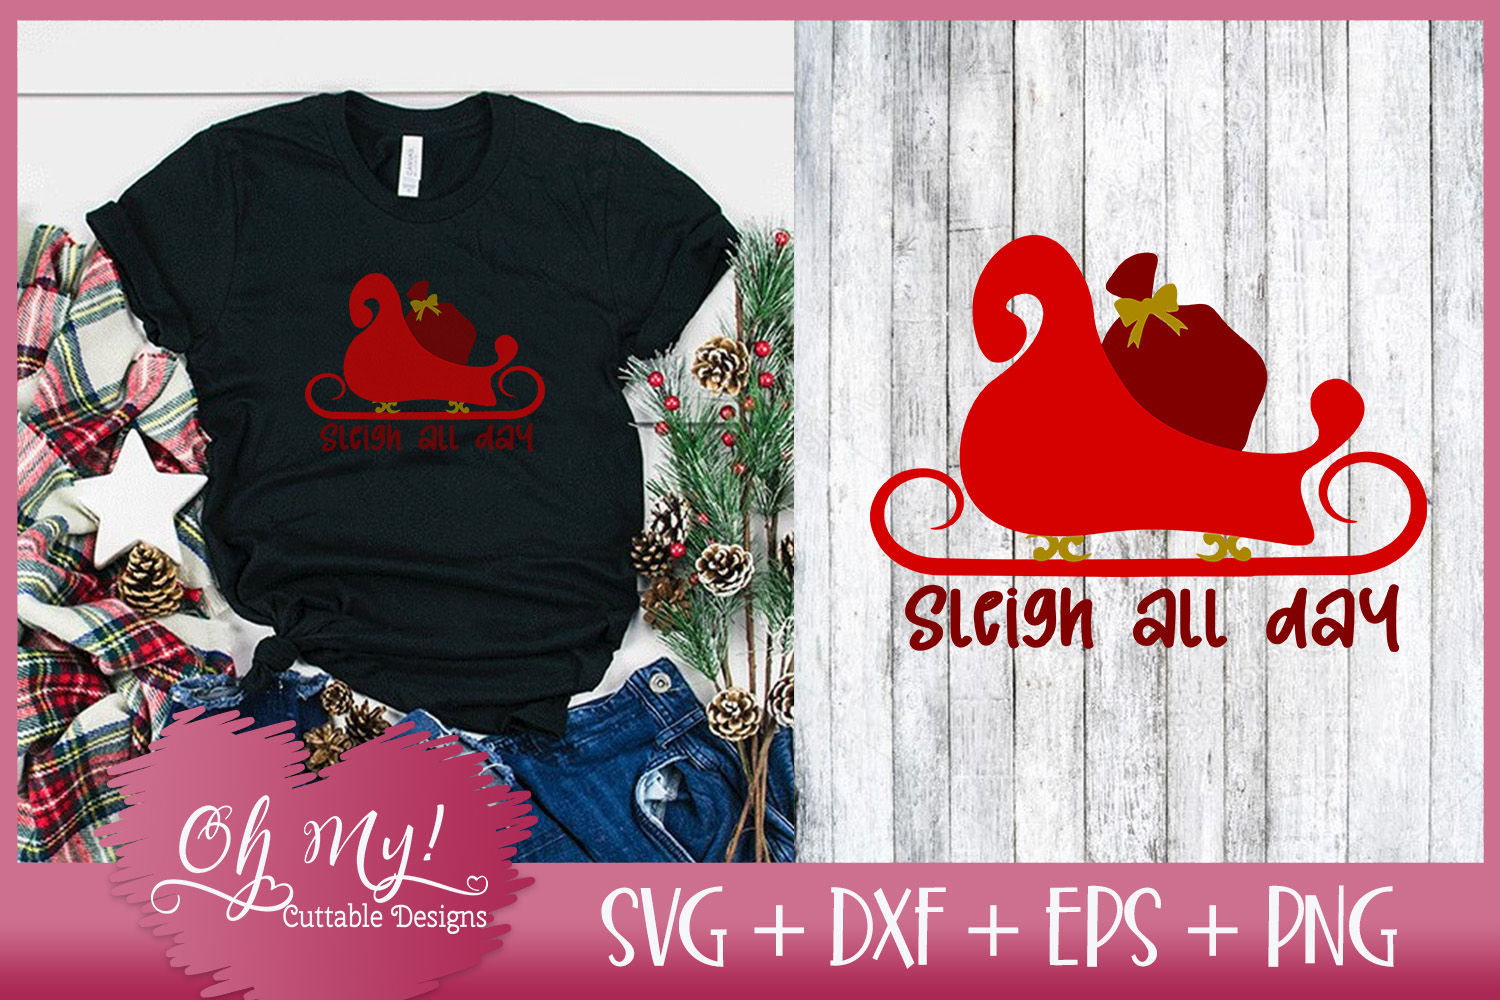 Sleigh All Day - SVG DXF EPS PNG Cutting File example image 3